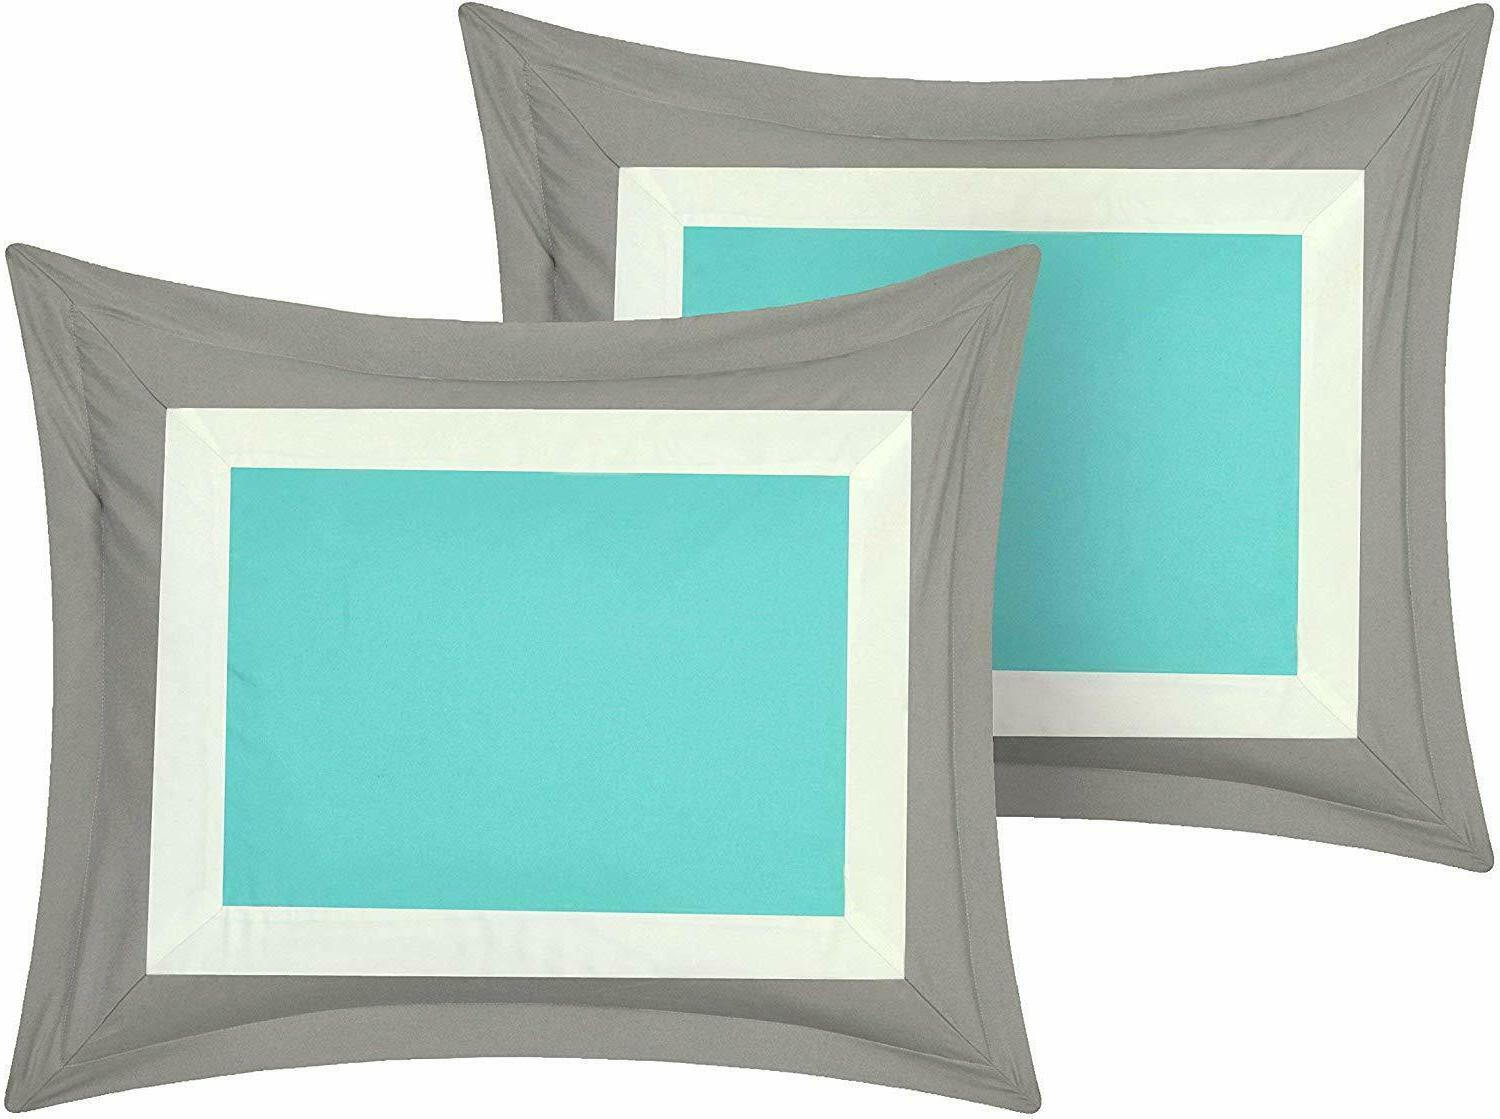 Chic Home Duke Piece Complete Block Bed Queen Turquoise Microfiber